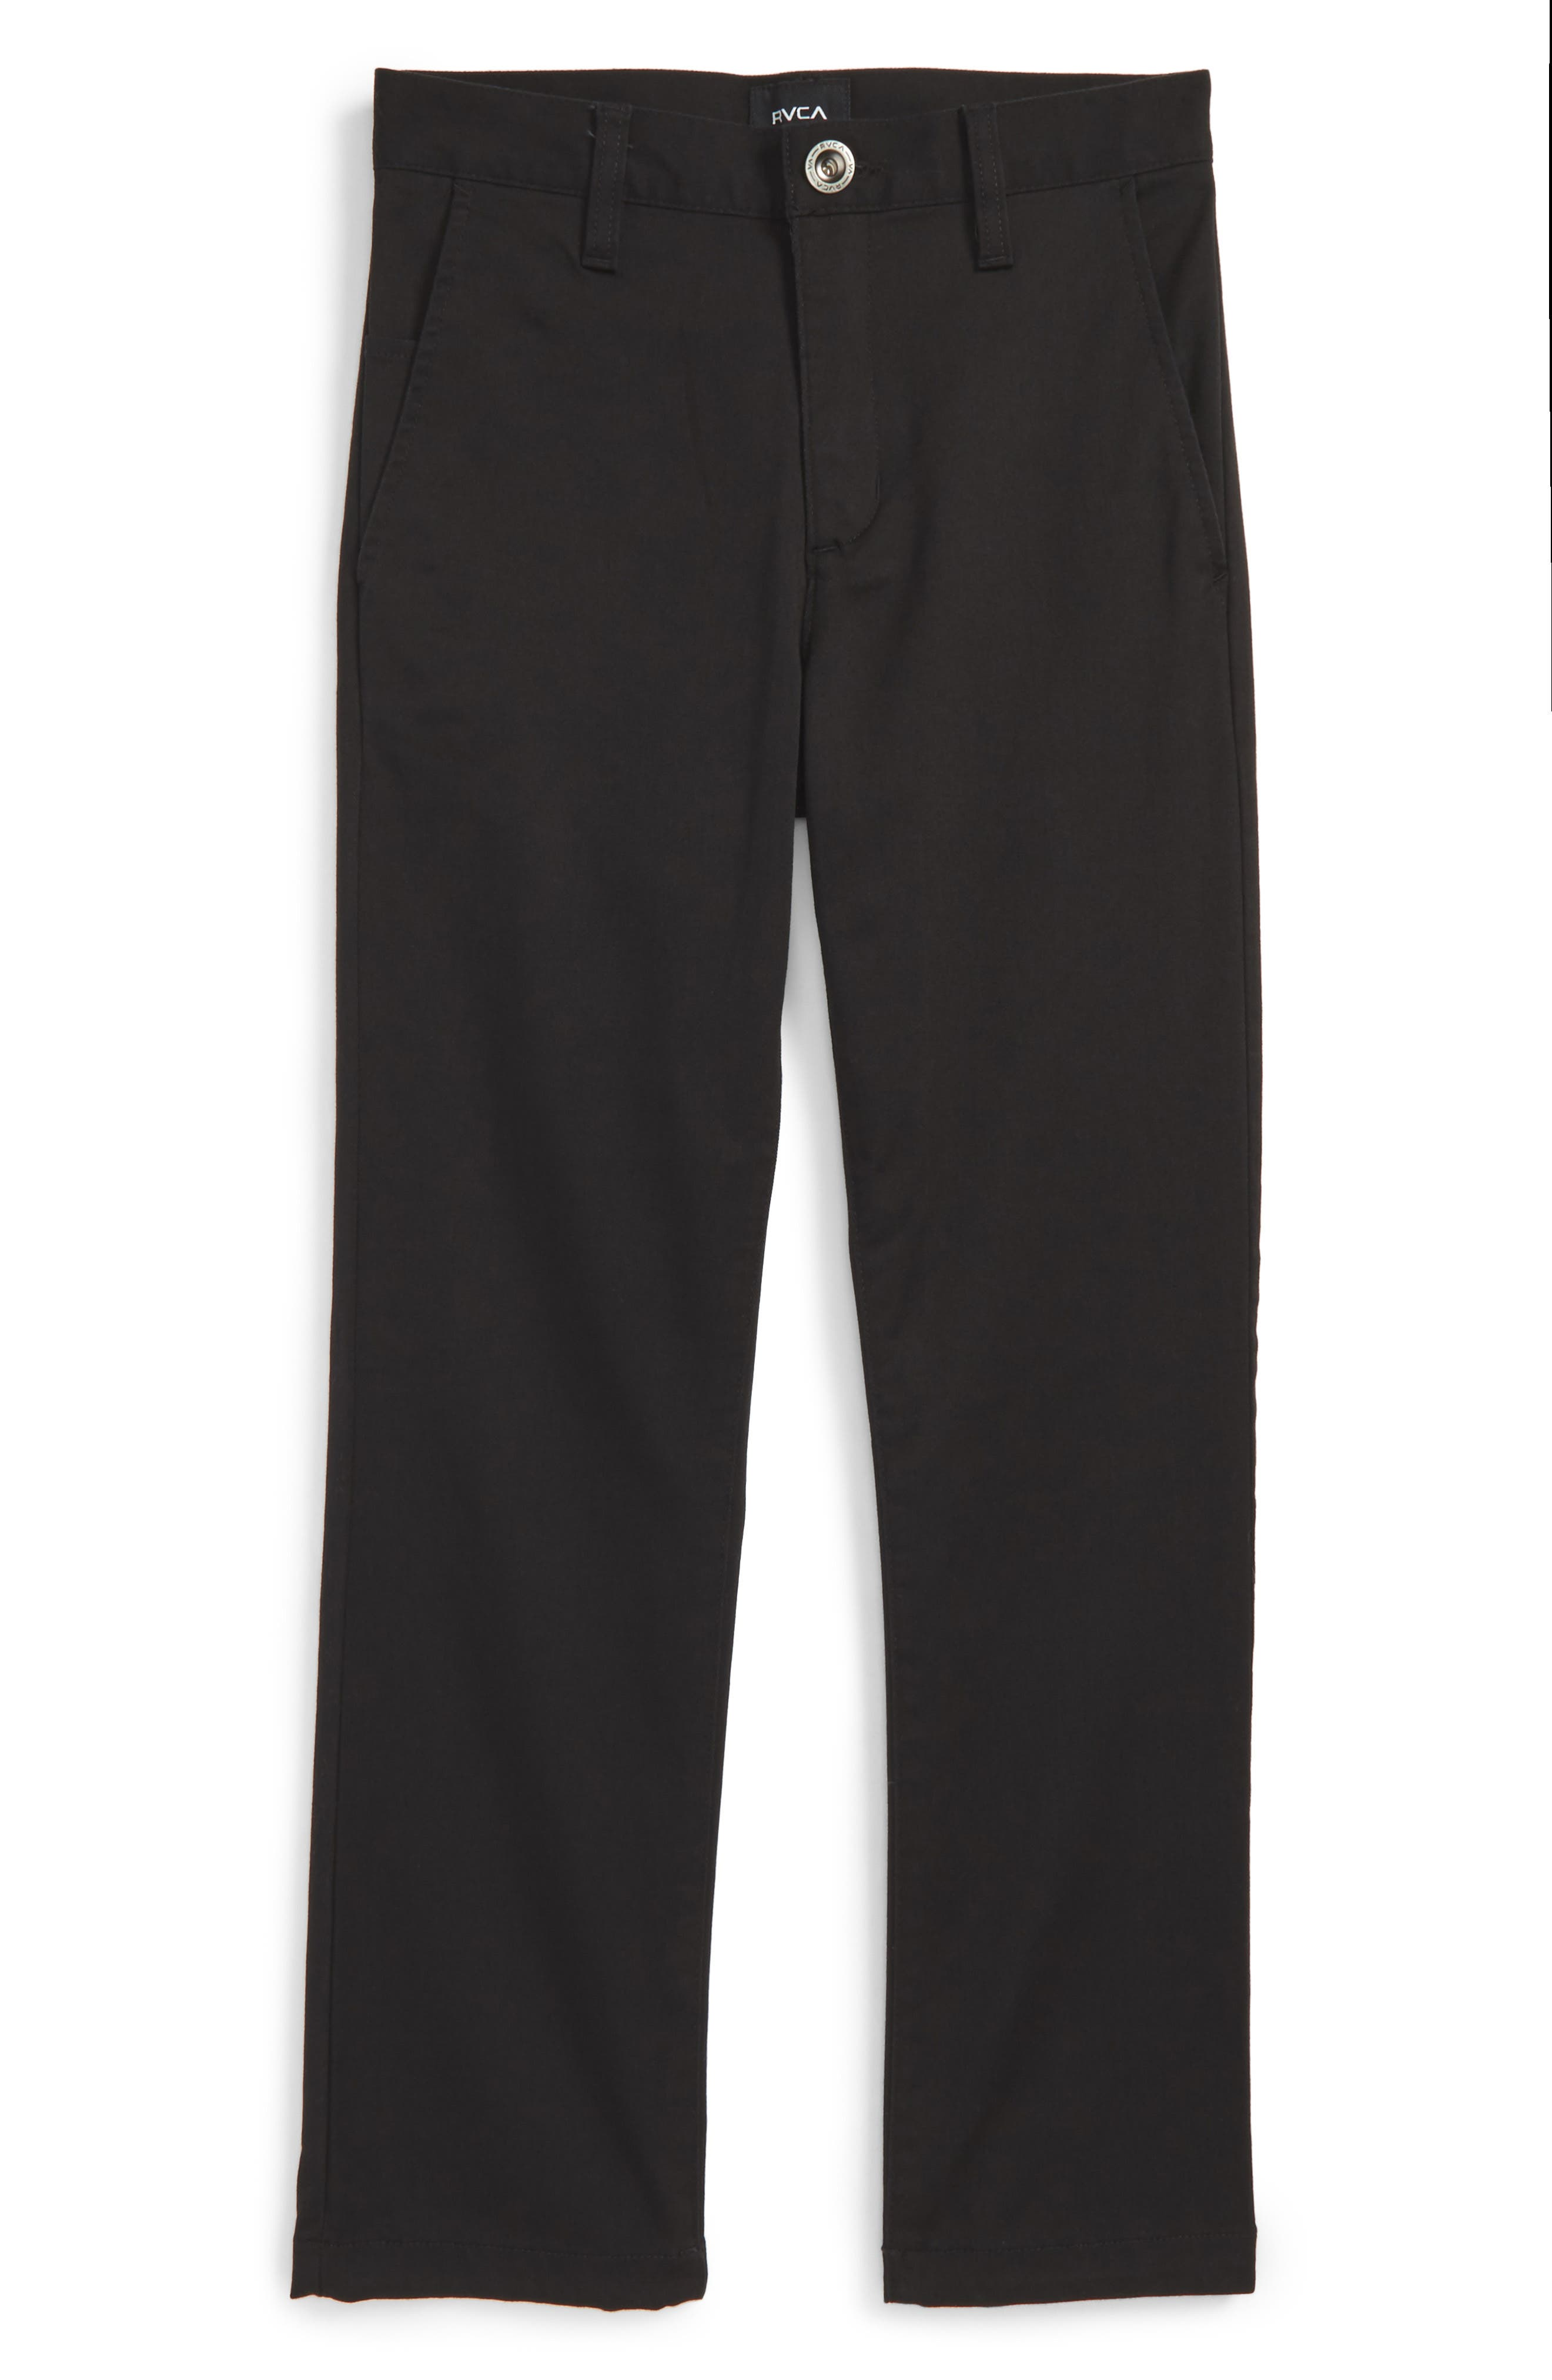 'Weekday' Stretch Chinos,                         Main,                         color, BLACK